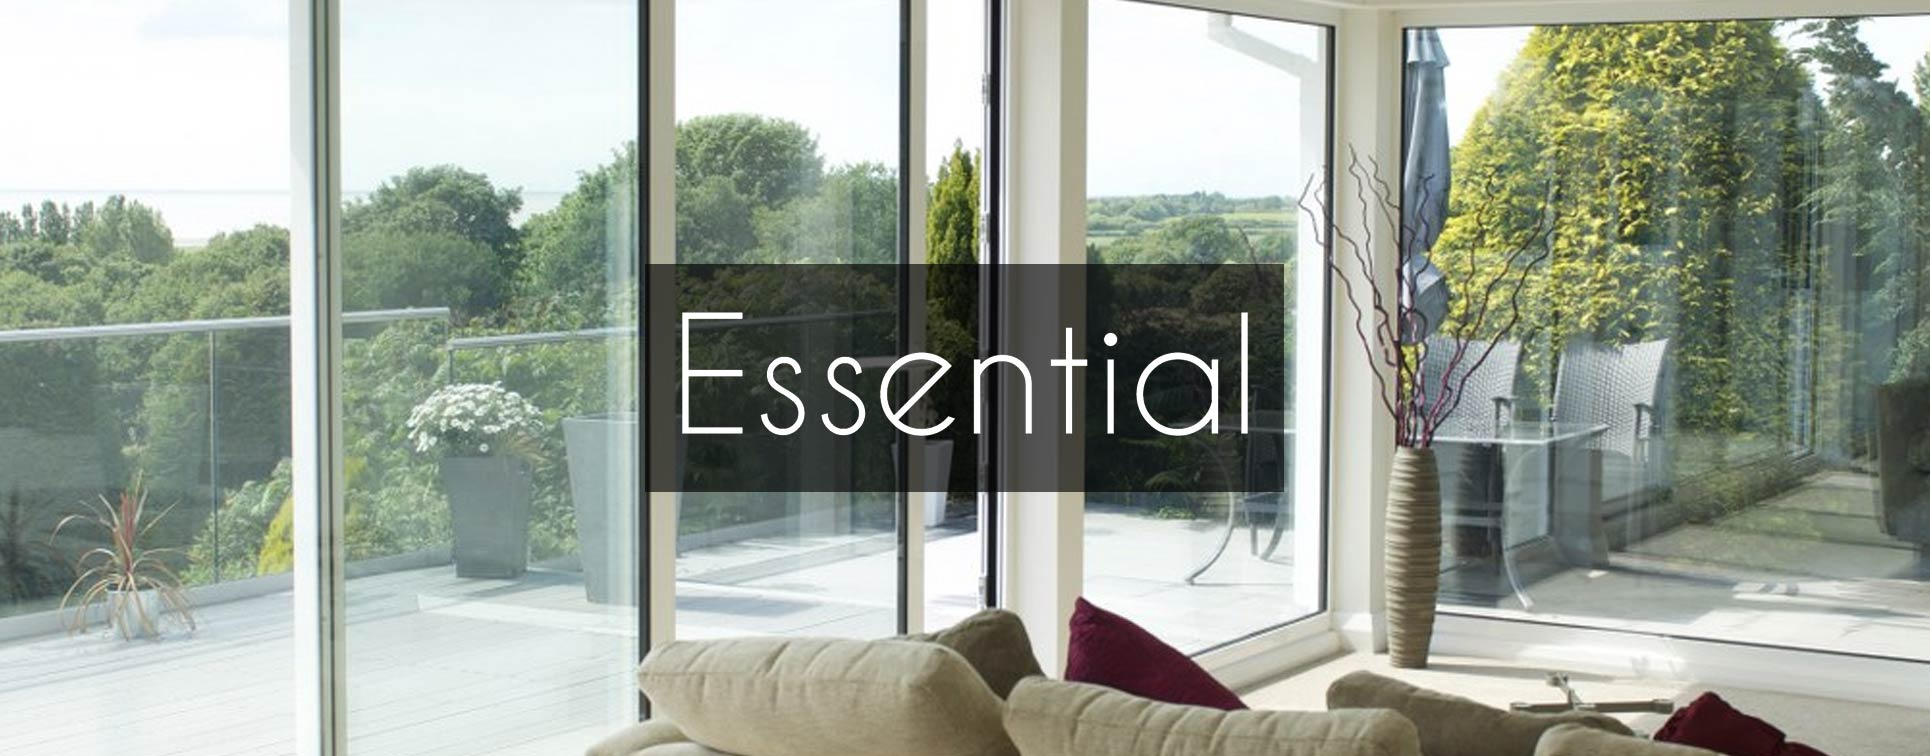 Essential sliding doors